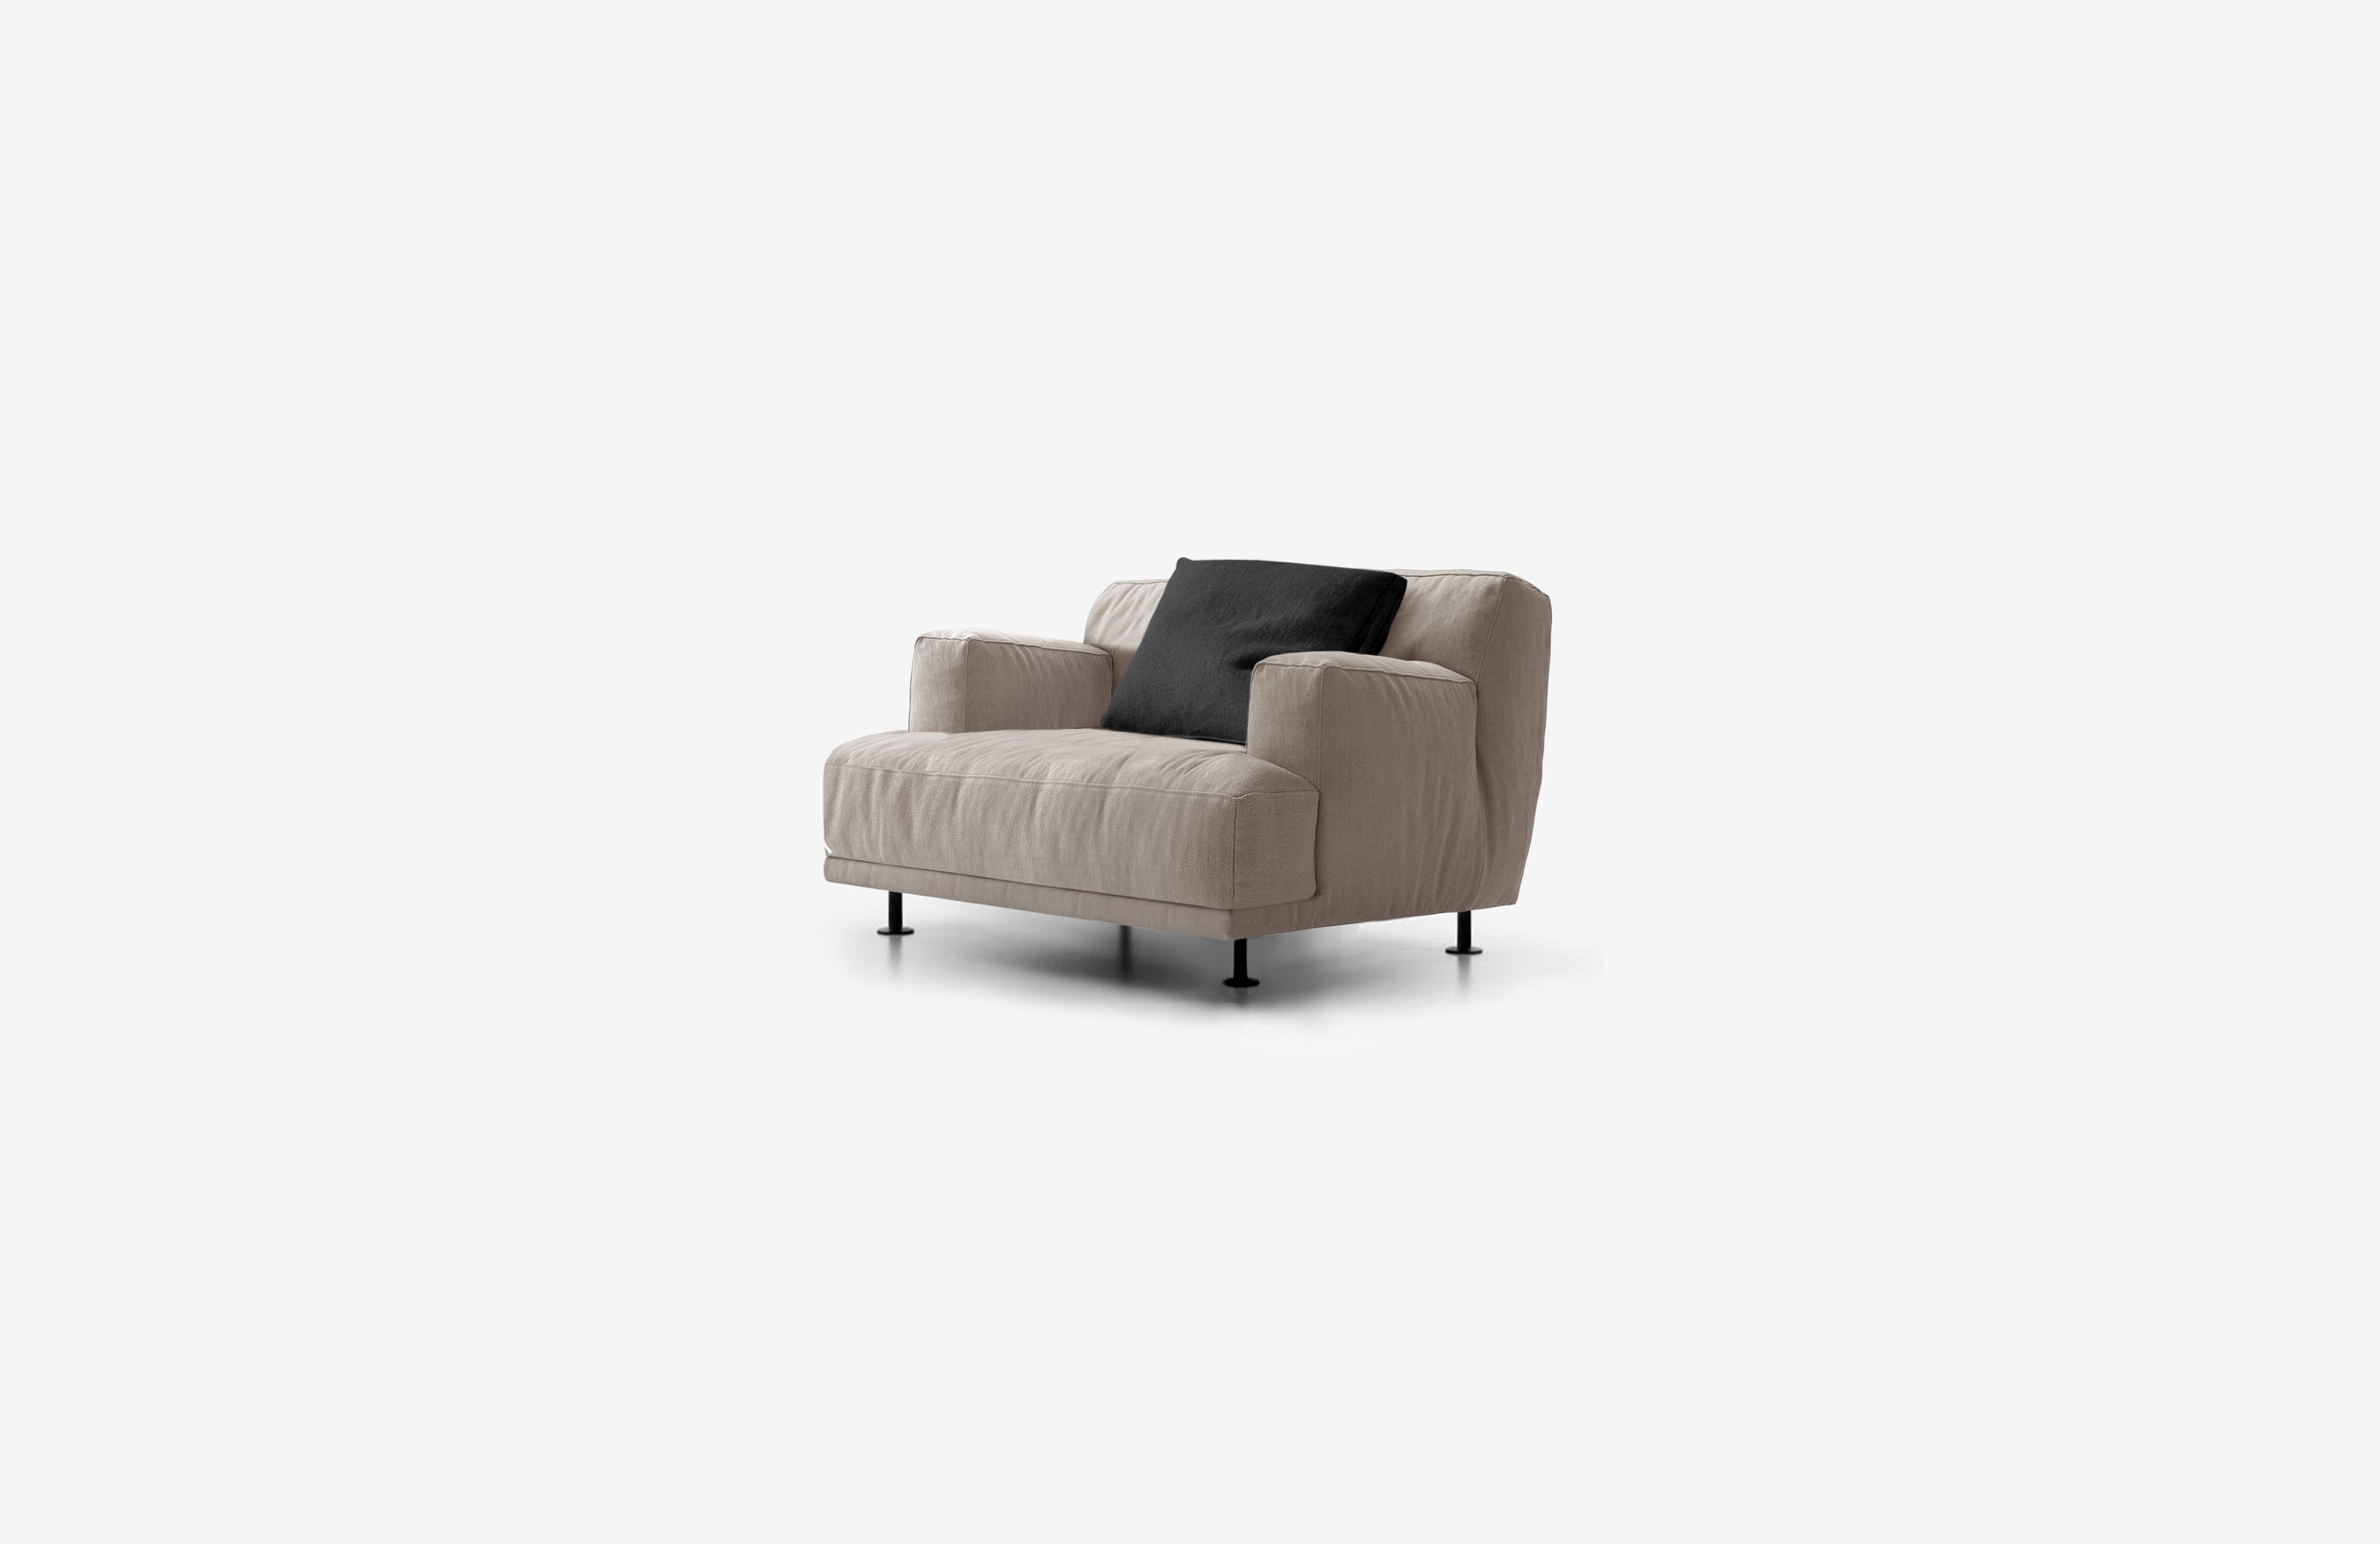 MOLA SOFA & CHAIR